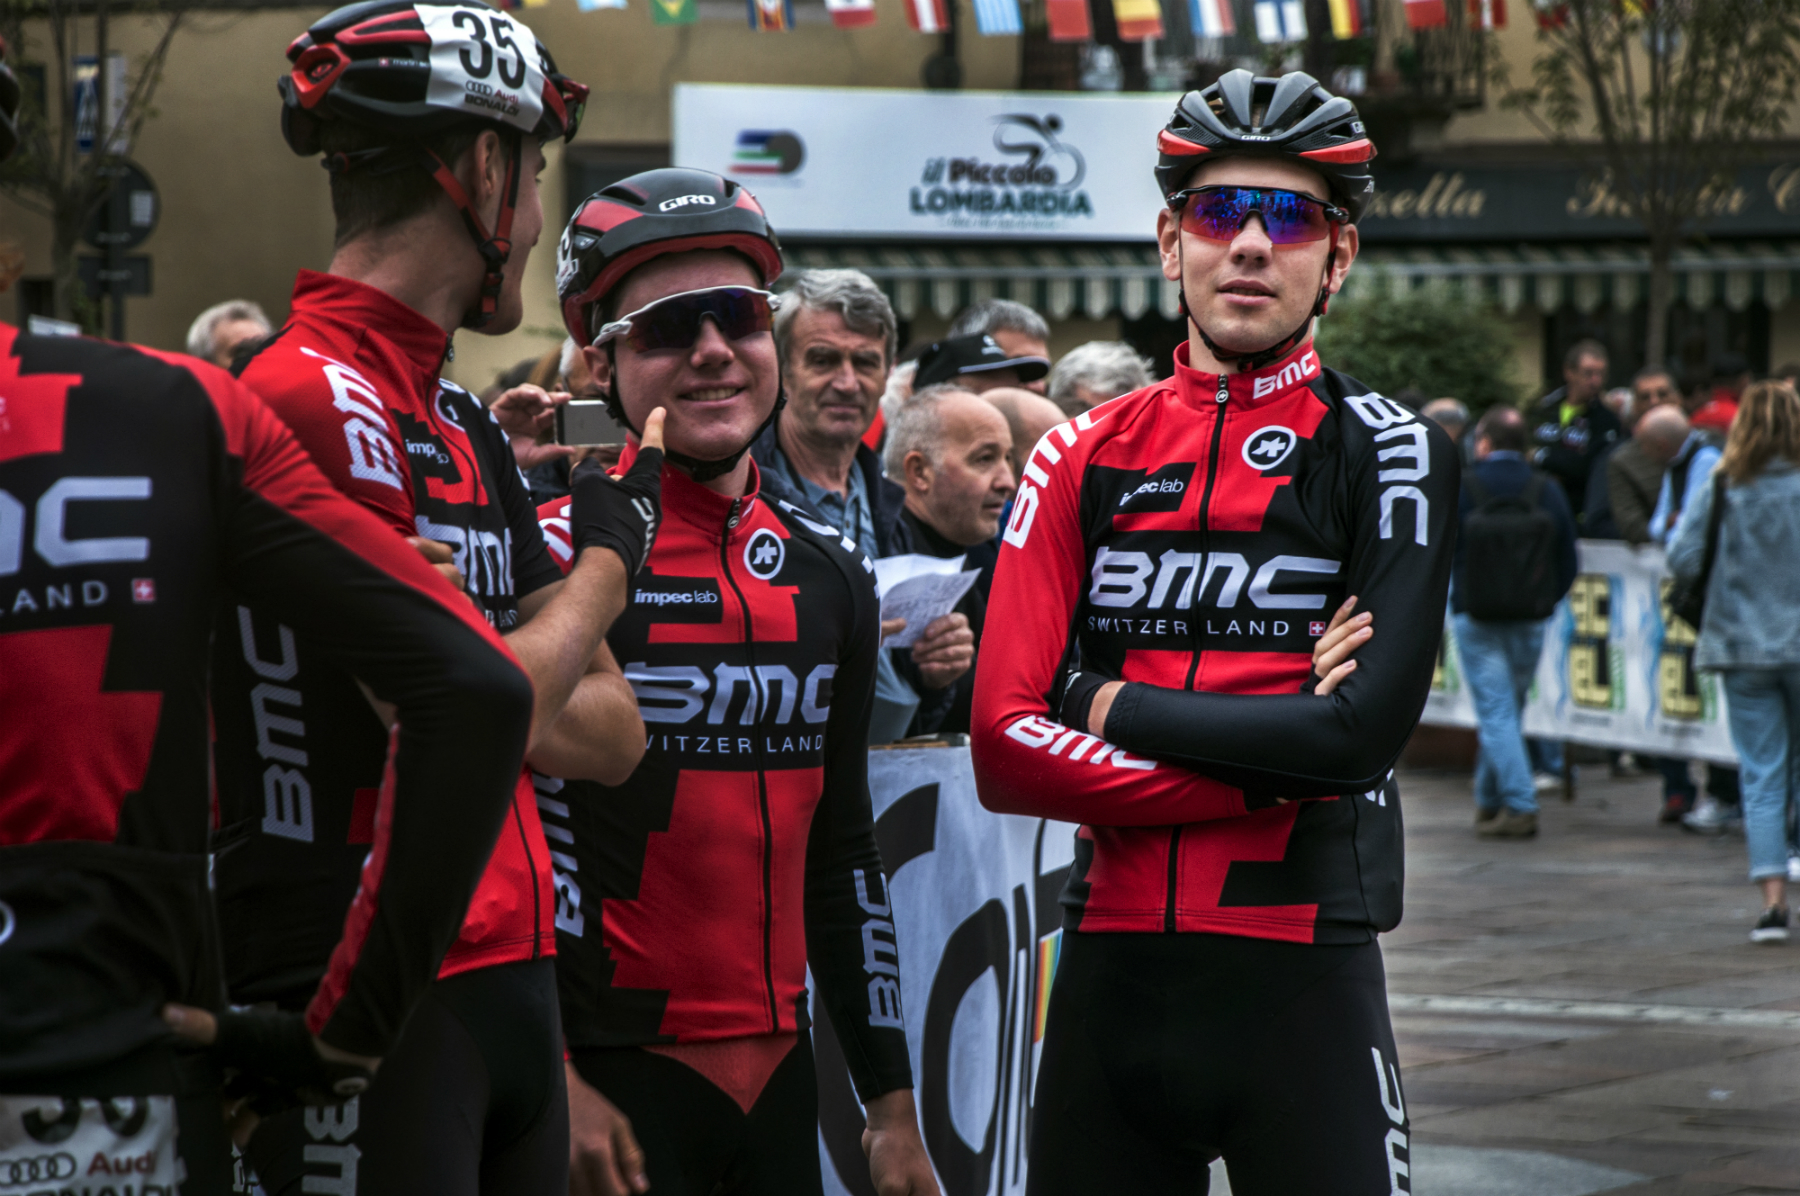 Steff Cras at il Lombardia for BMC Development